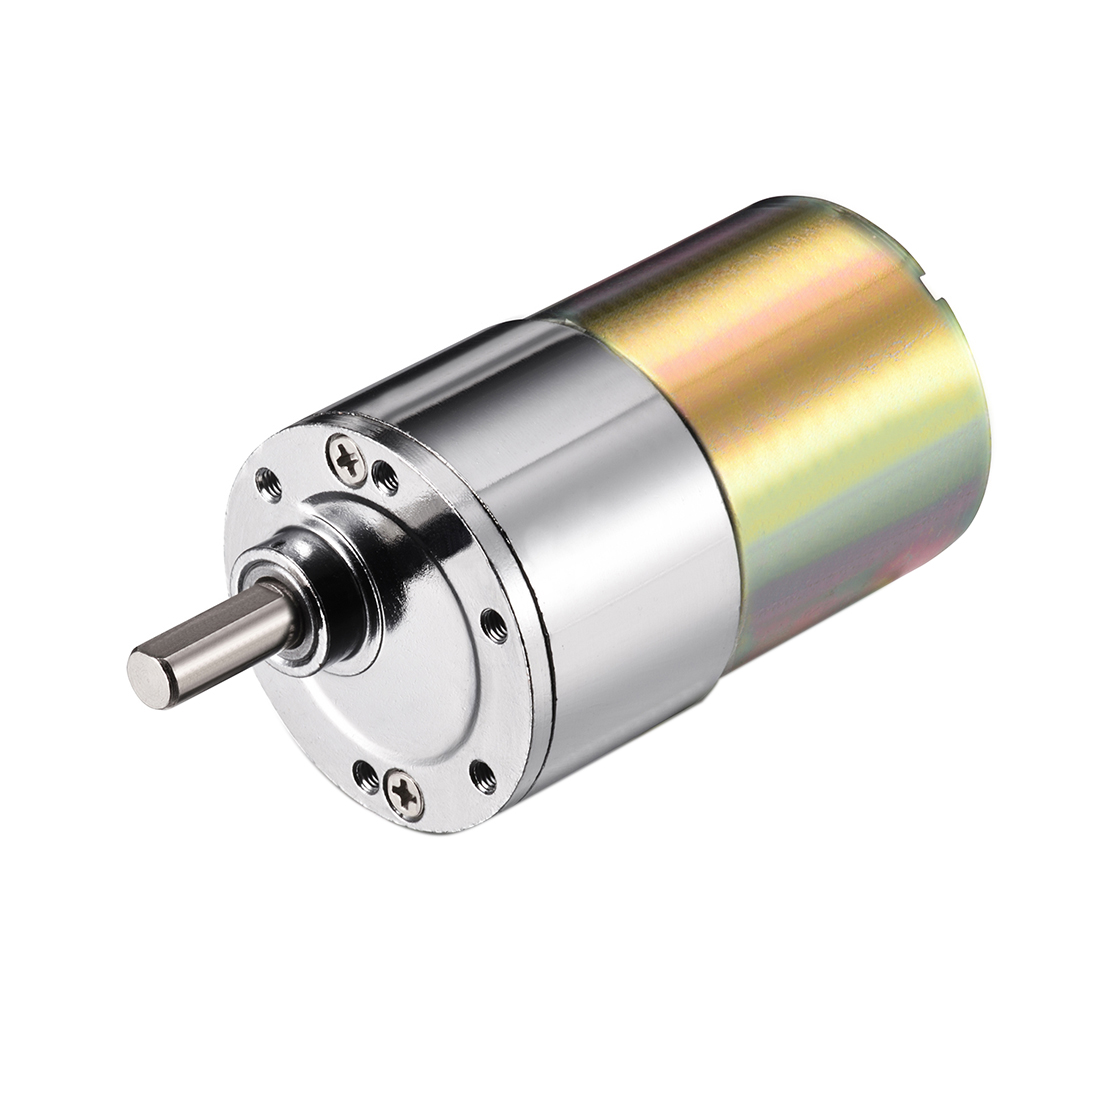 DC 12V 100RPM Micro Gear Box Motor Speed Reduction Electric Gearbox Eccentric Output Shaft